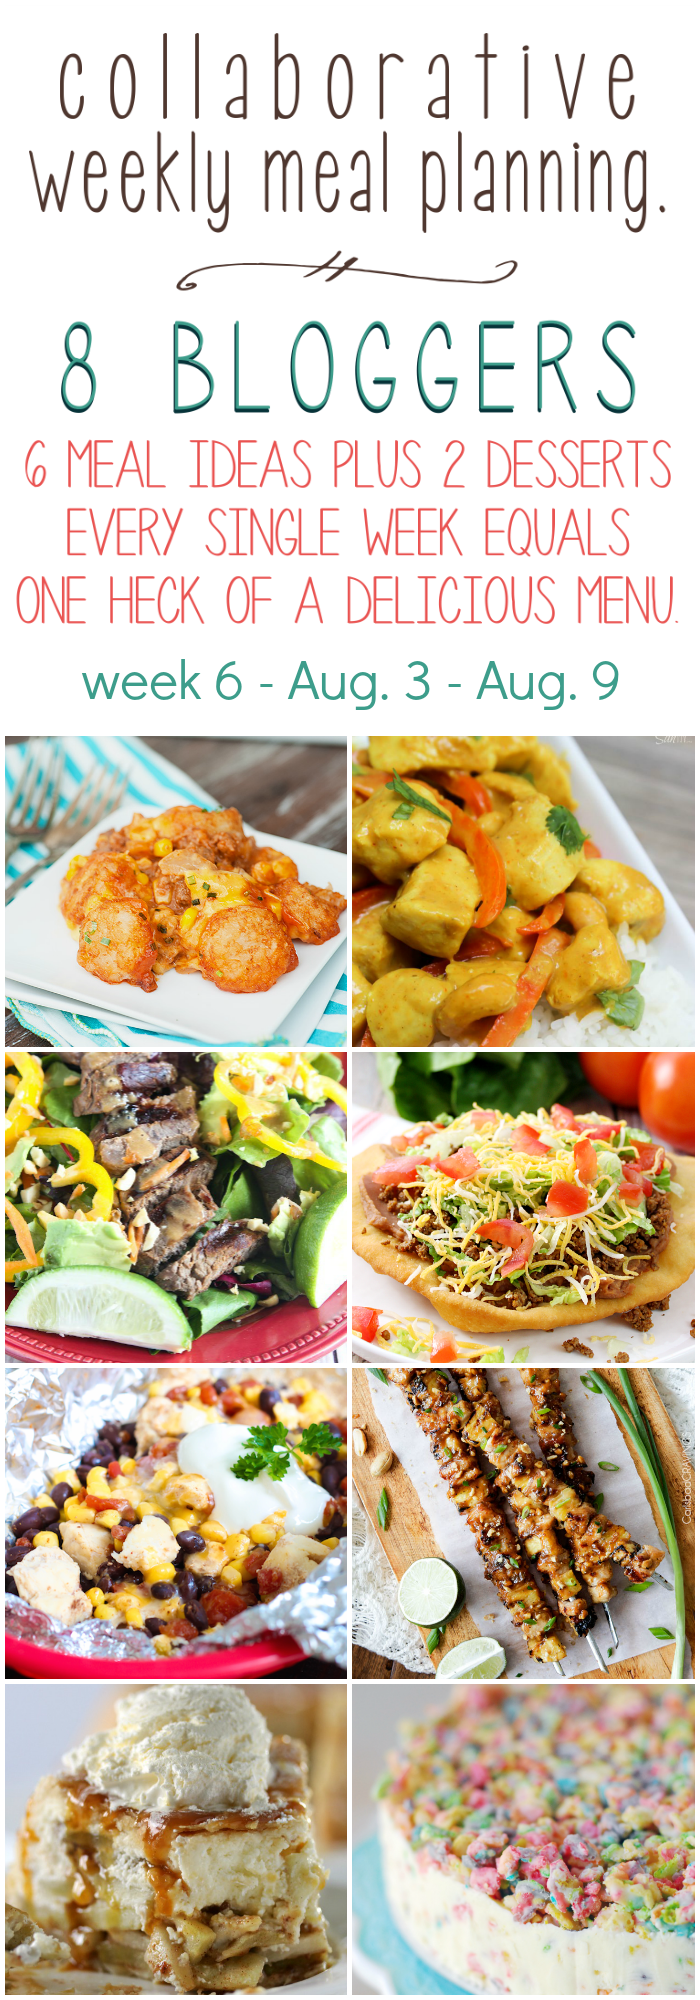 Collaborative weekly meal planning. 8 bloggers. 6 meal ideas plus 2 desserts every single week equals one heck of a delicious menu - week 6